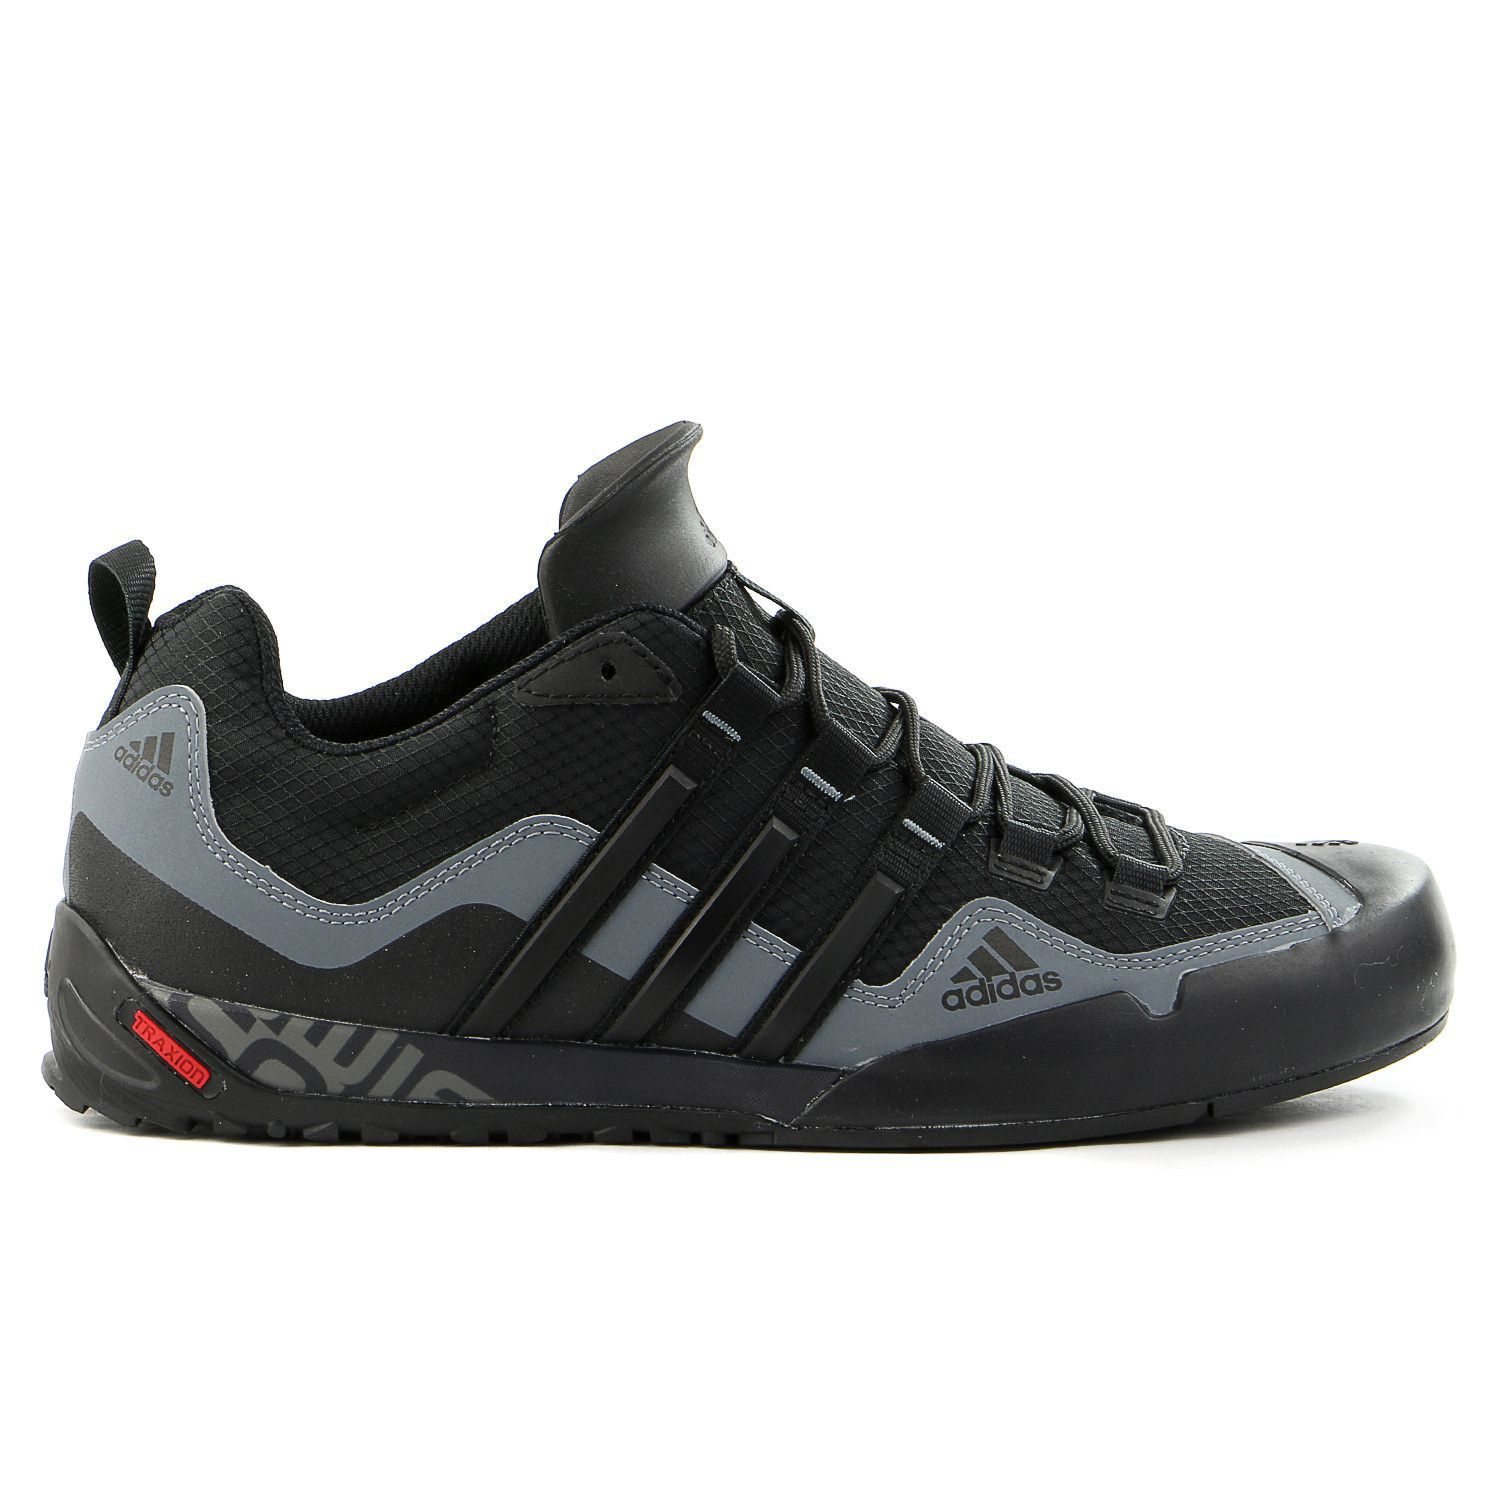 2a7401a7234 Adidas Outdoor Terrex Swift Solo Hiking Sneaker Trail Shoe - Mens ...